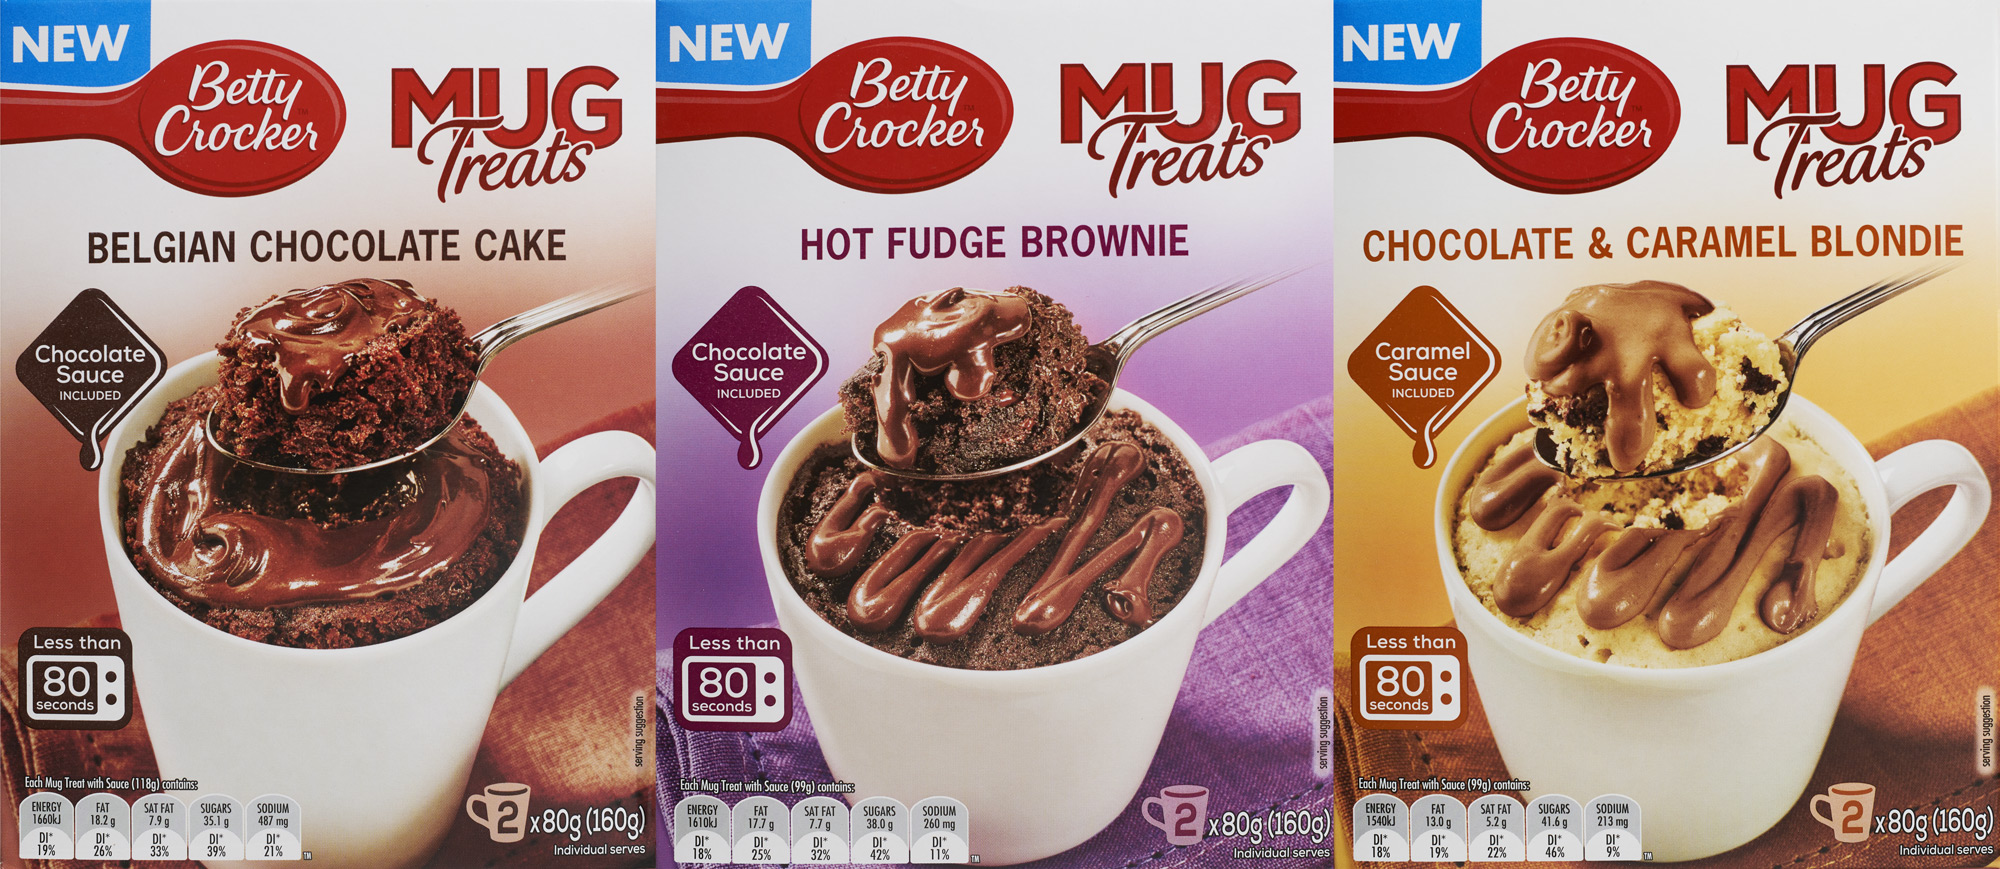 London food photographer -Mug cakes for Betty Crocker